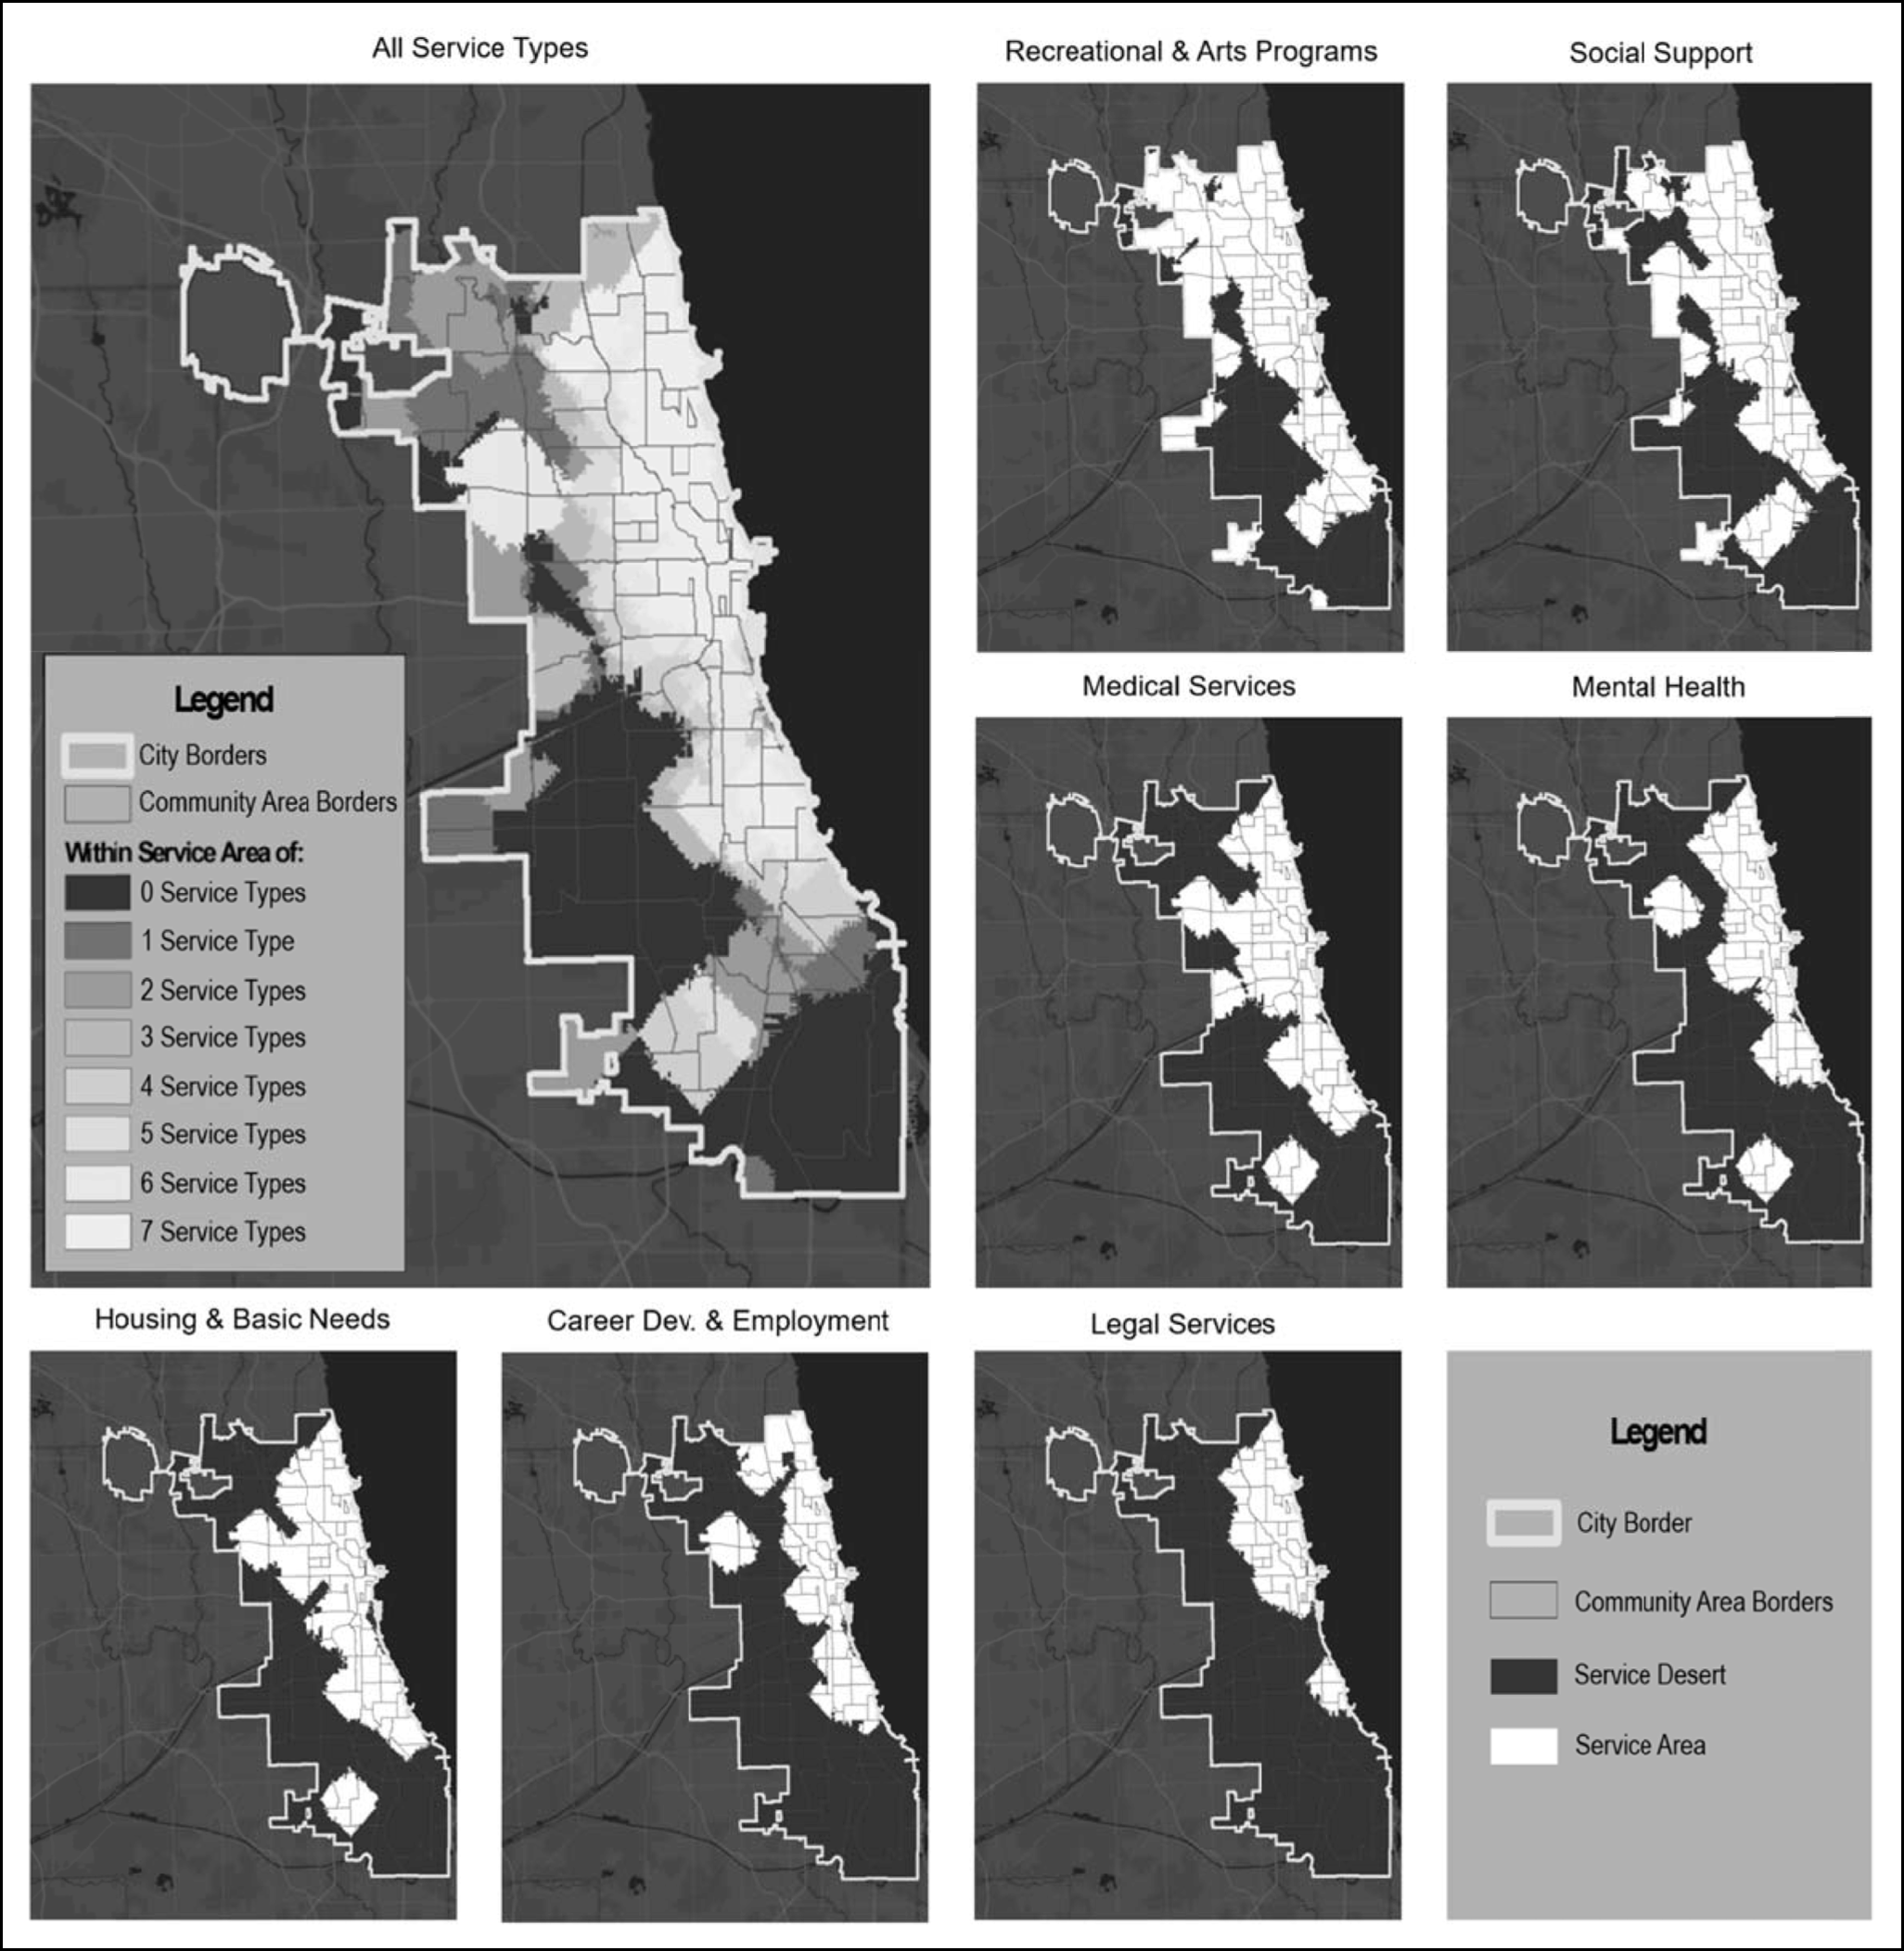 Racial and Socioeconomic Inequity in the Spatial